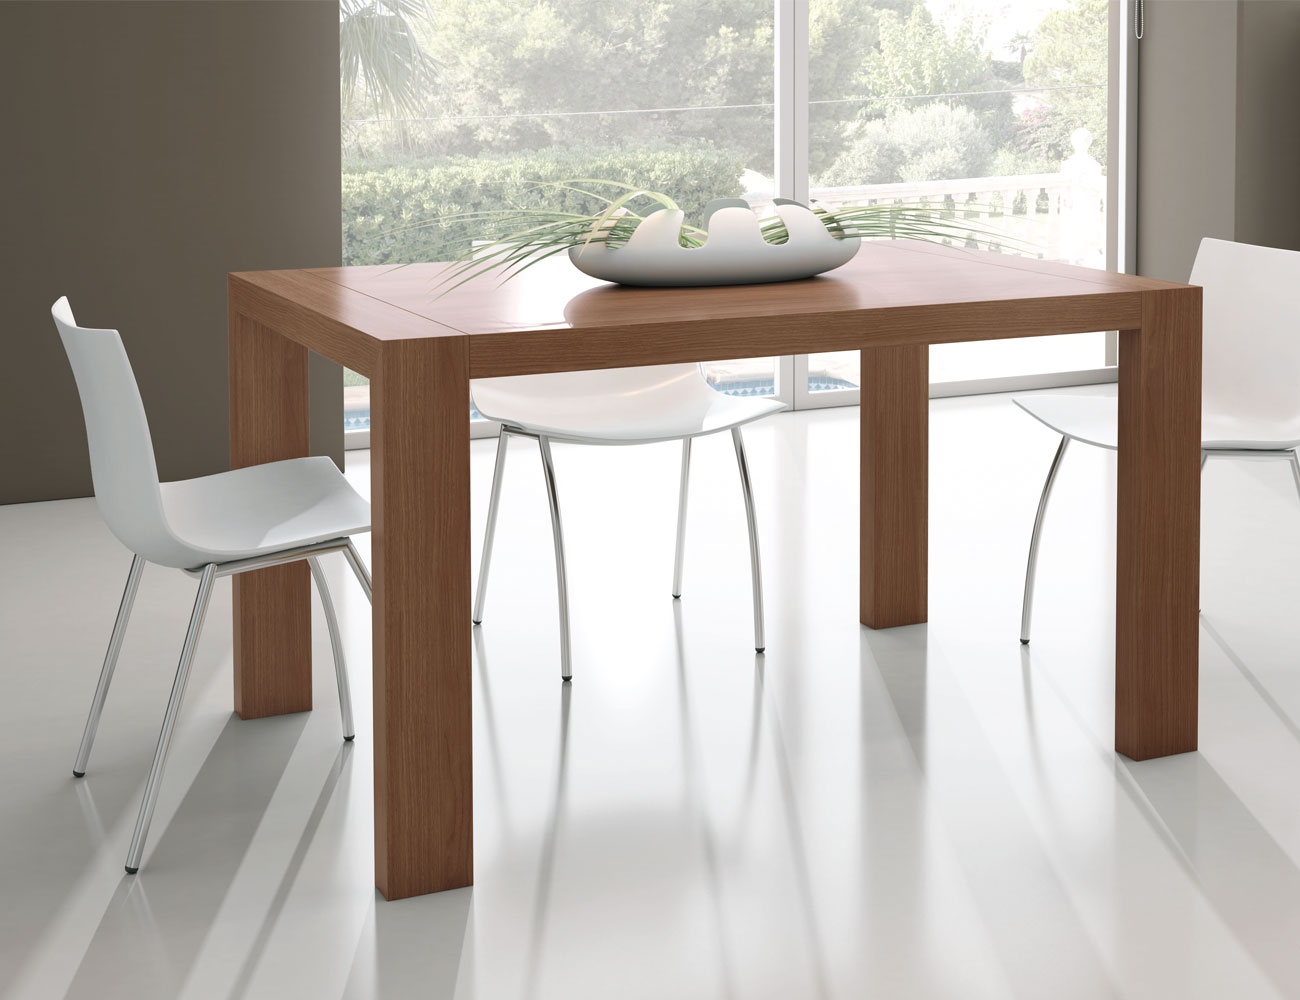 M223 mesa comedor rectangular extensible nogal